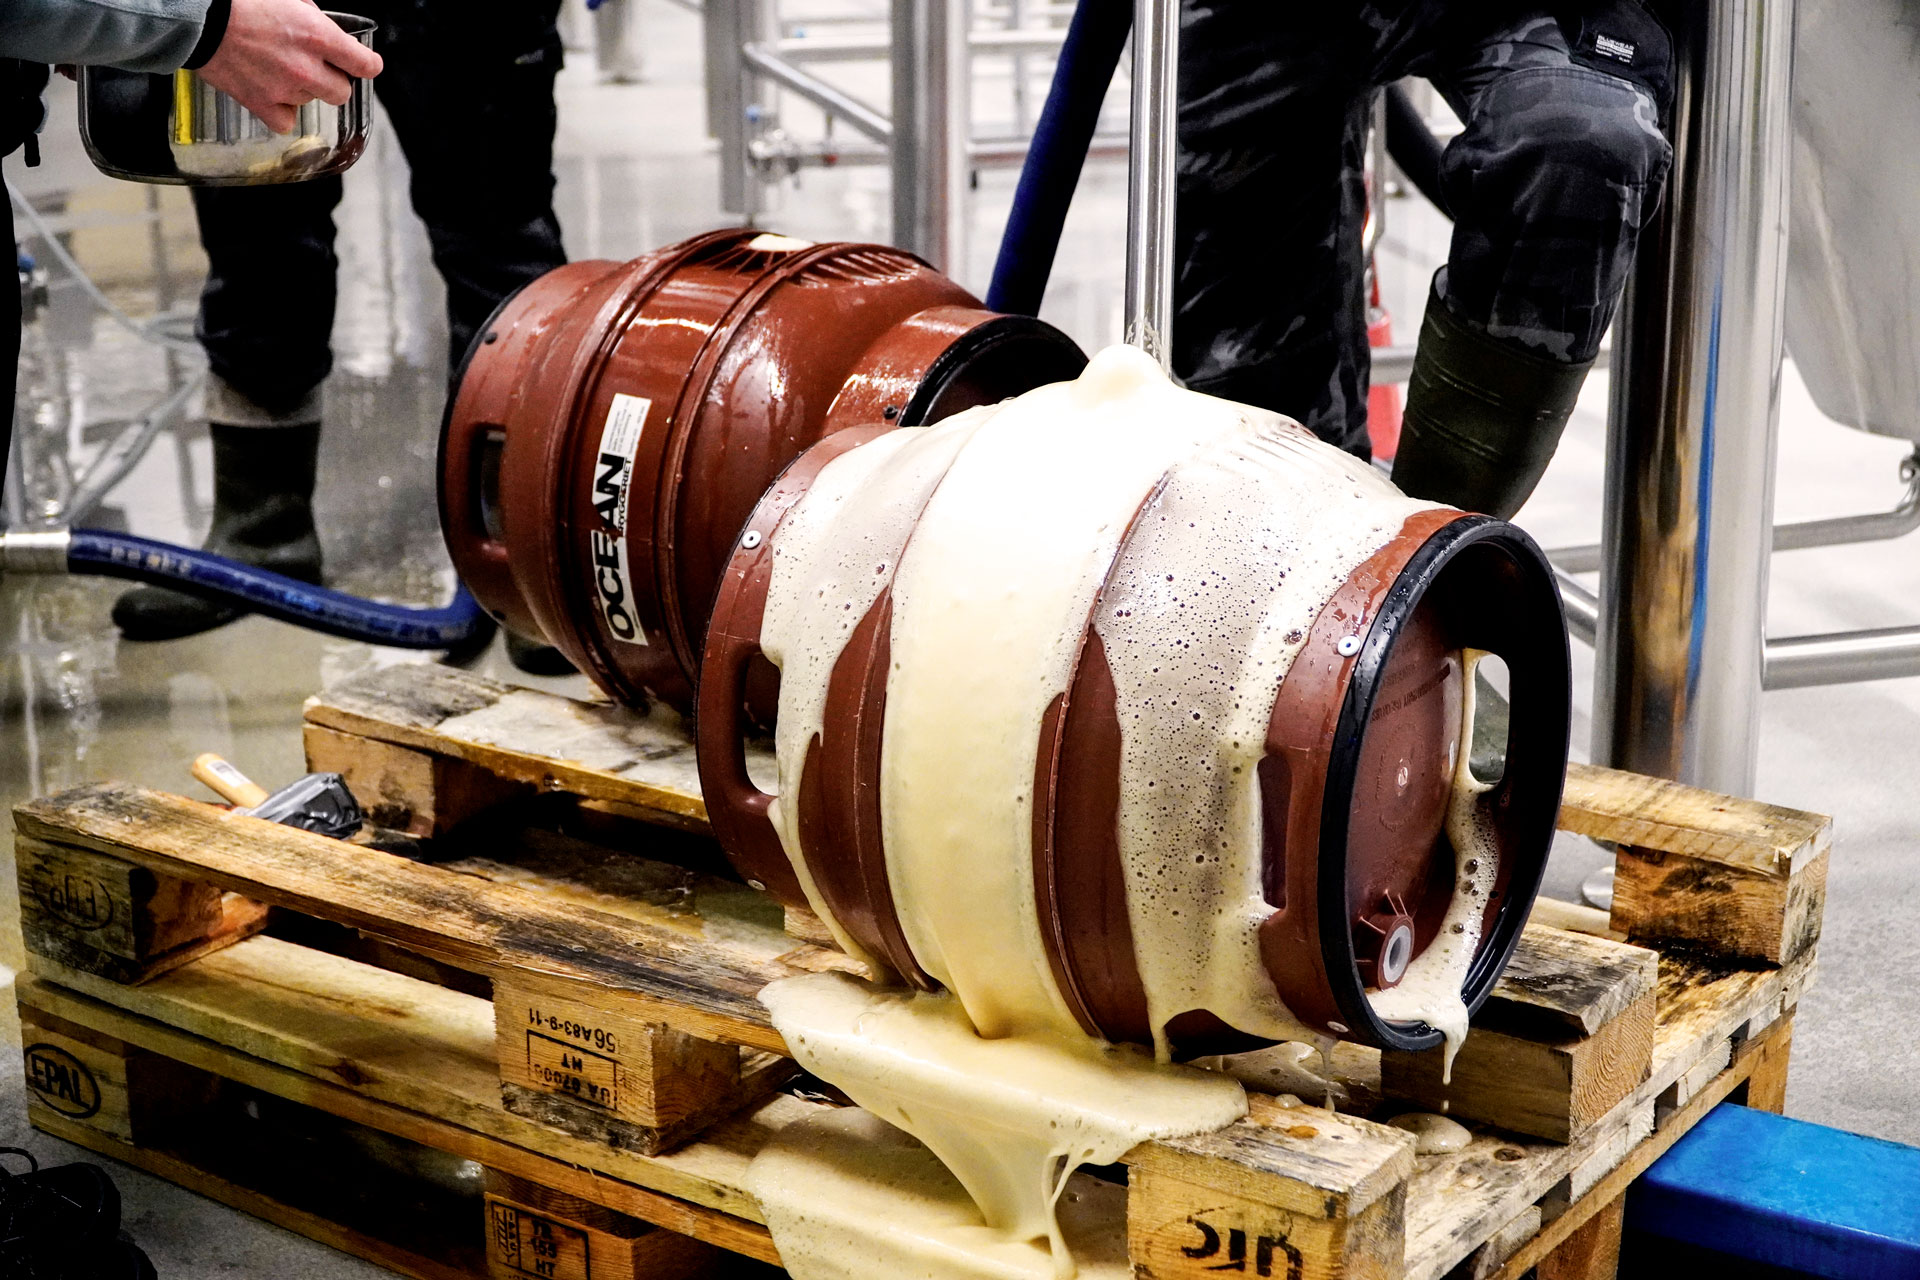 Staff filling a barrel with Malt Beverage, an Amber Lager, brewed by Swedish Craft Brewery Beerbliotek.